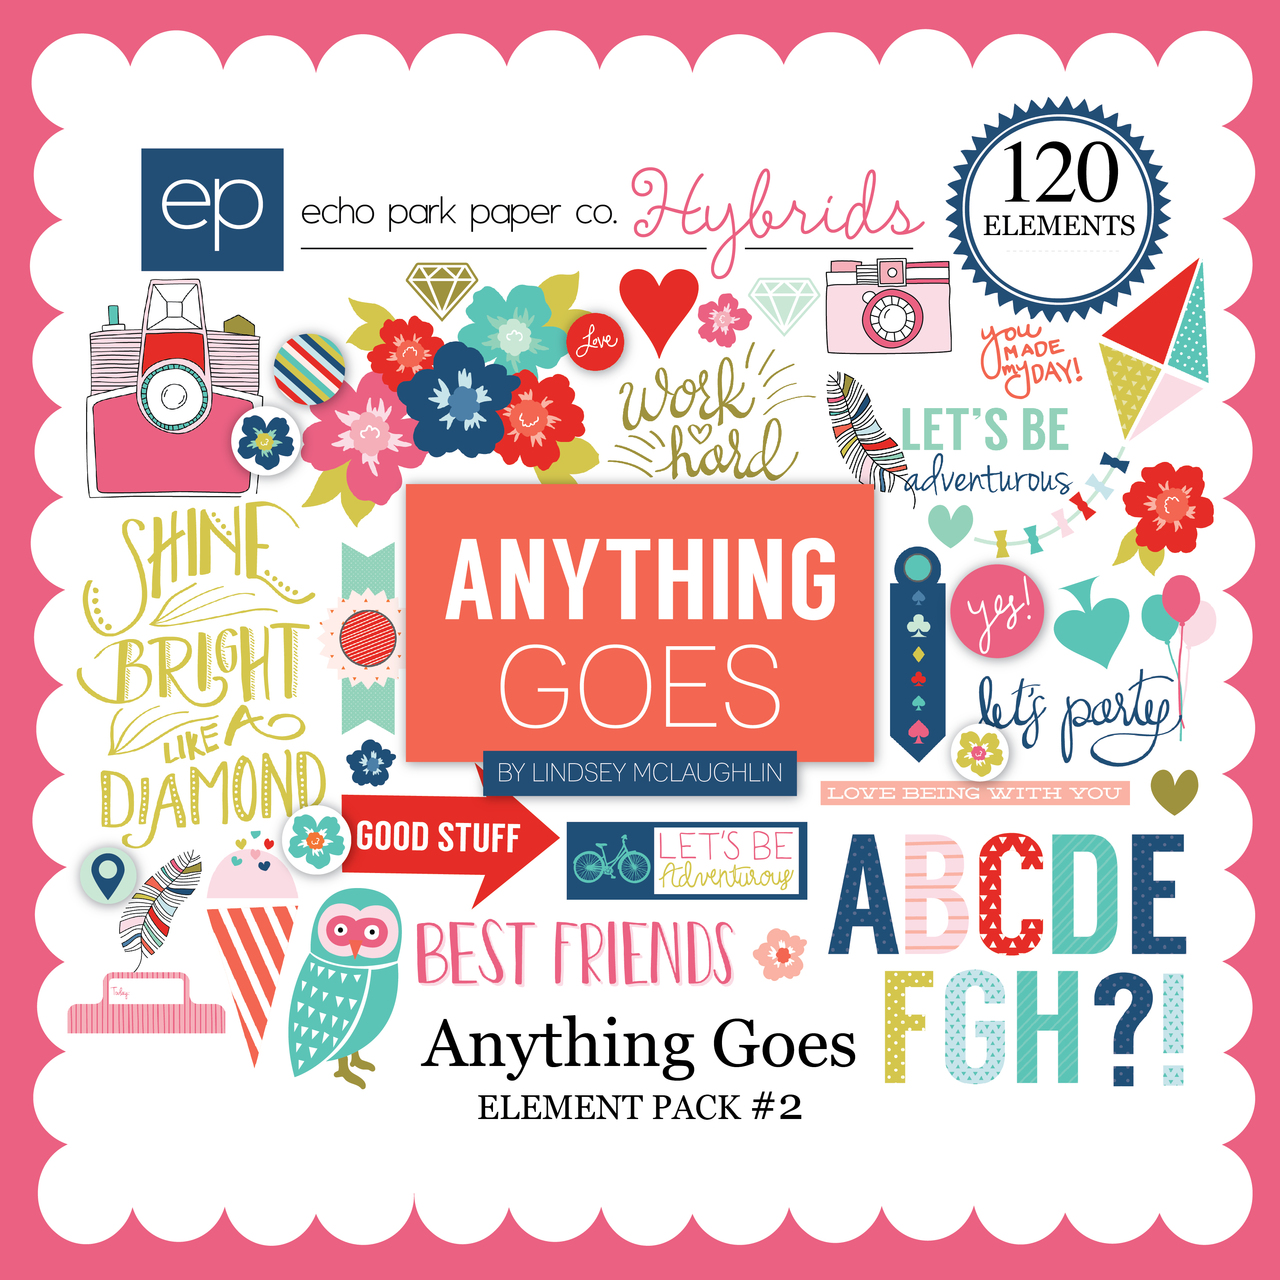 Anything Goes Element Pack #2